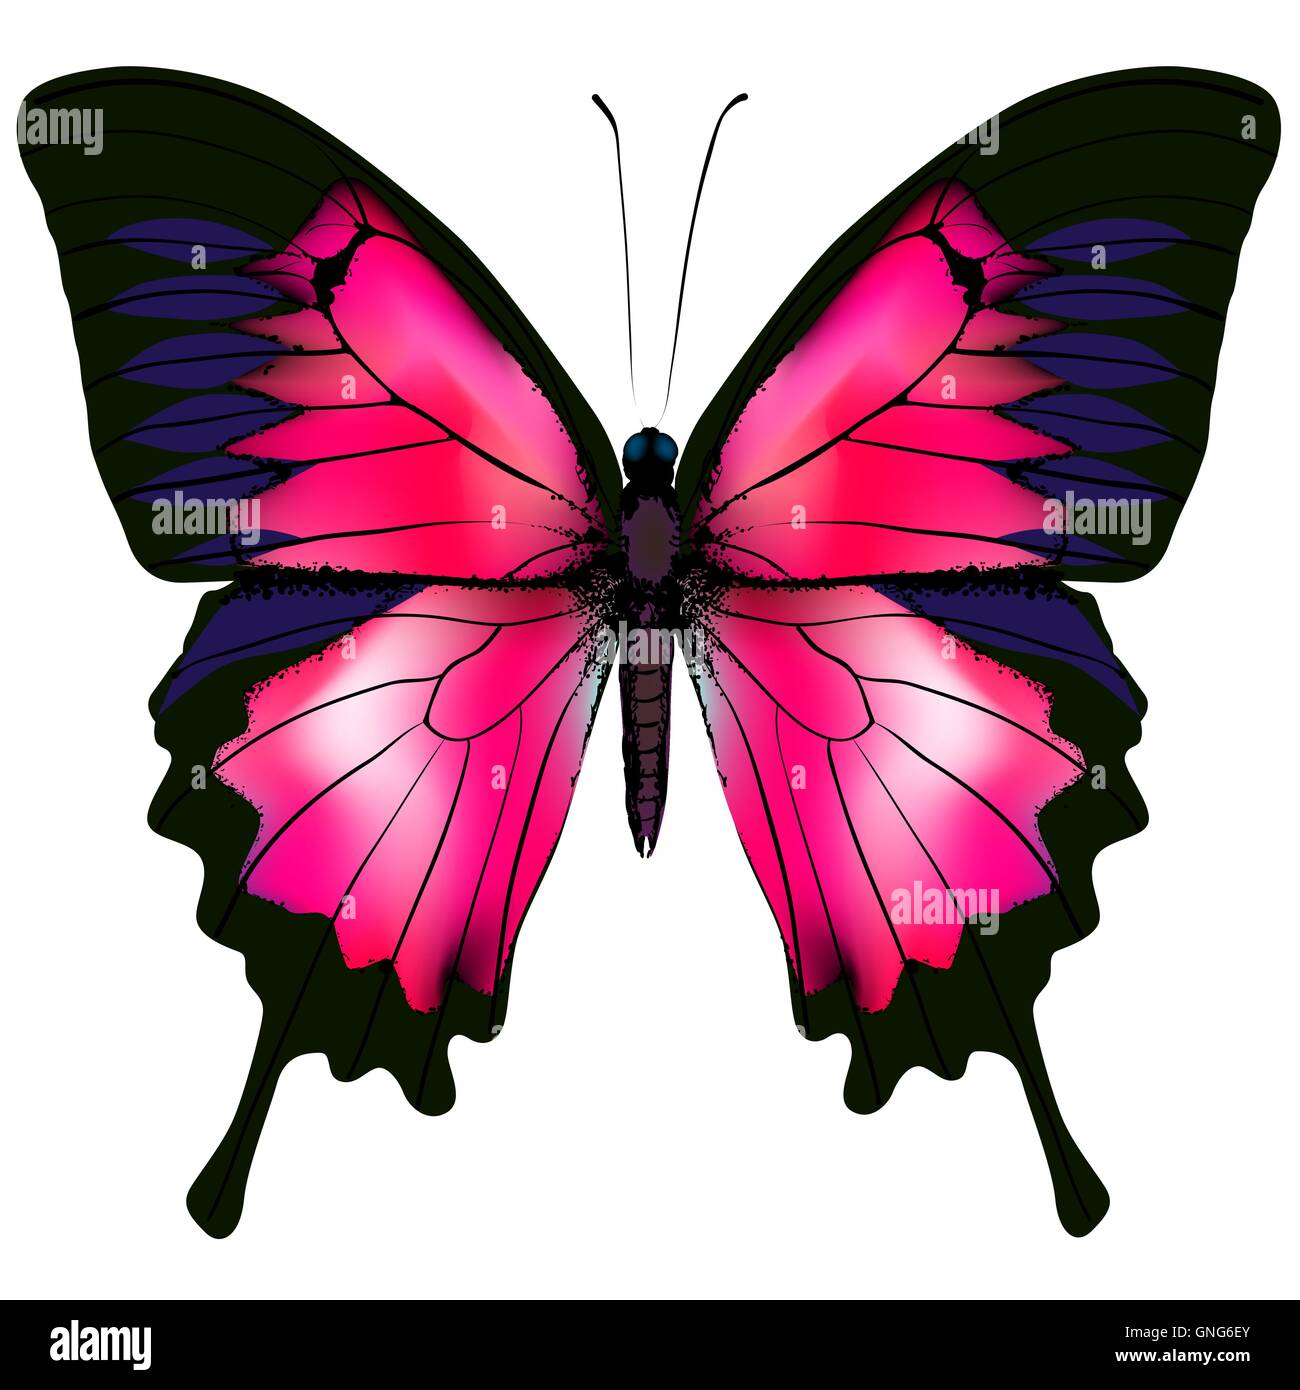 Butterfly. Vector illustration of red butterfly isolated on white background. - Stock Image